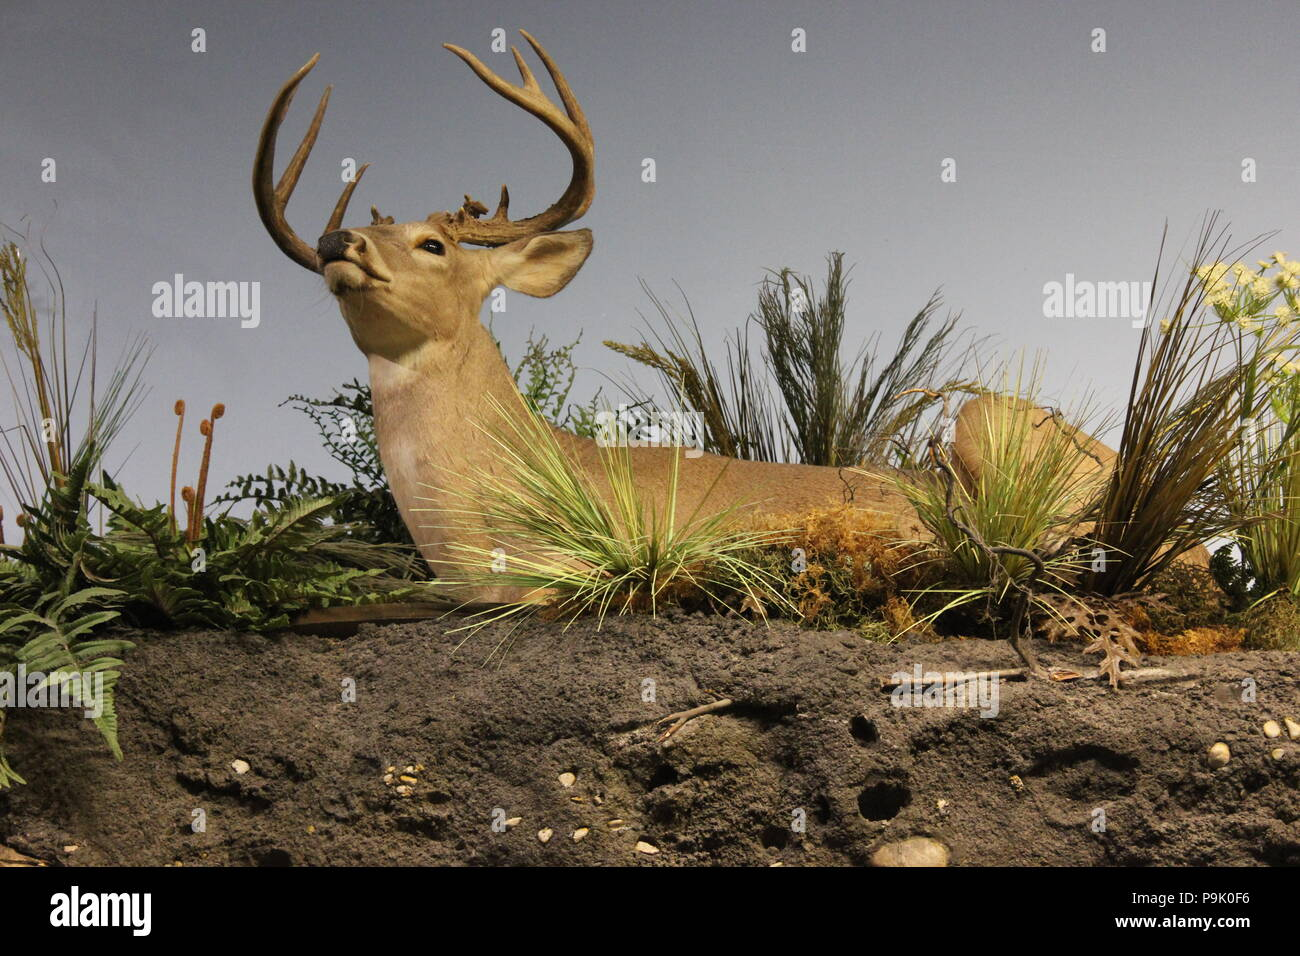 Stuffed reclining deer at the Children's Museum in Indianapolis, Indiana. - Stock Image